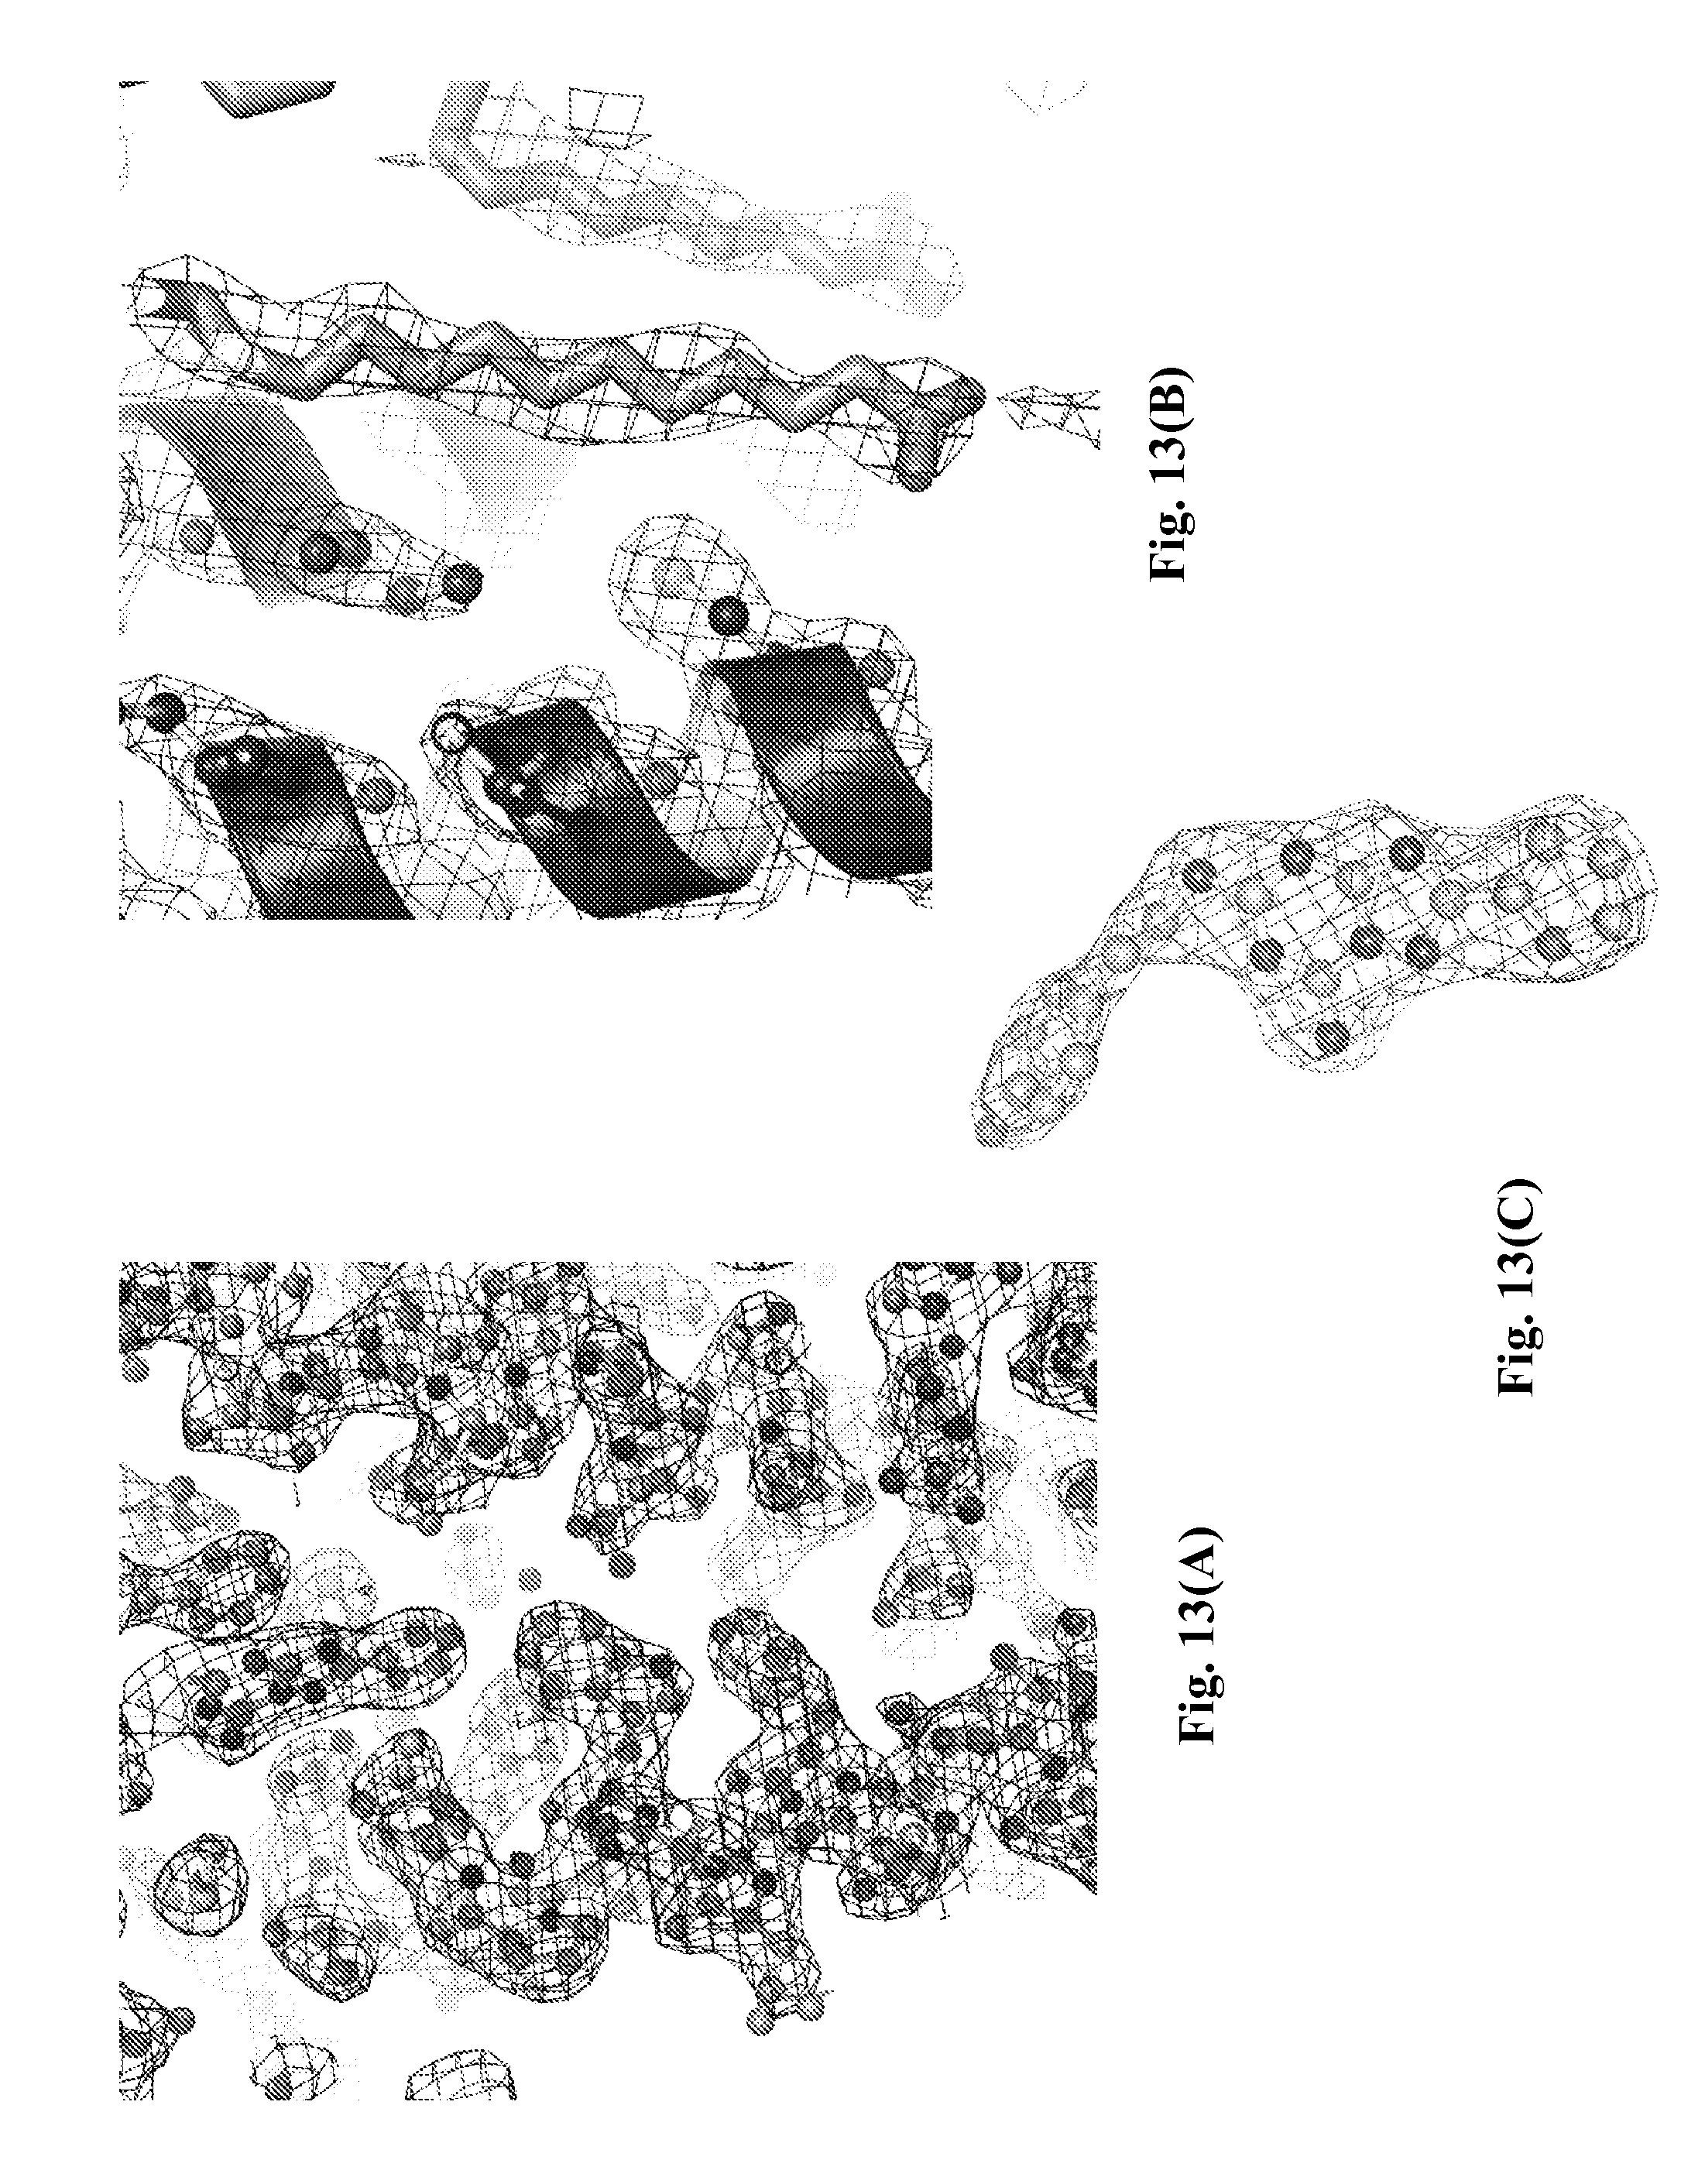 US20120123092A1 - Human a2a adenosine receptor crystals and uses